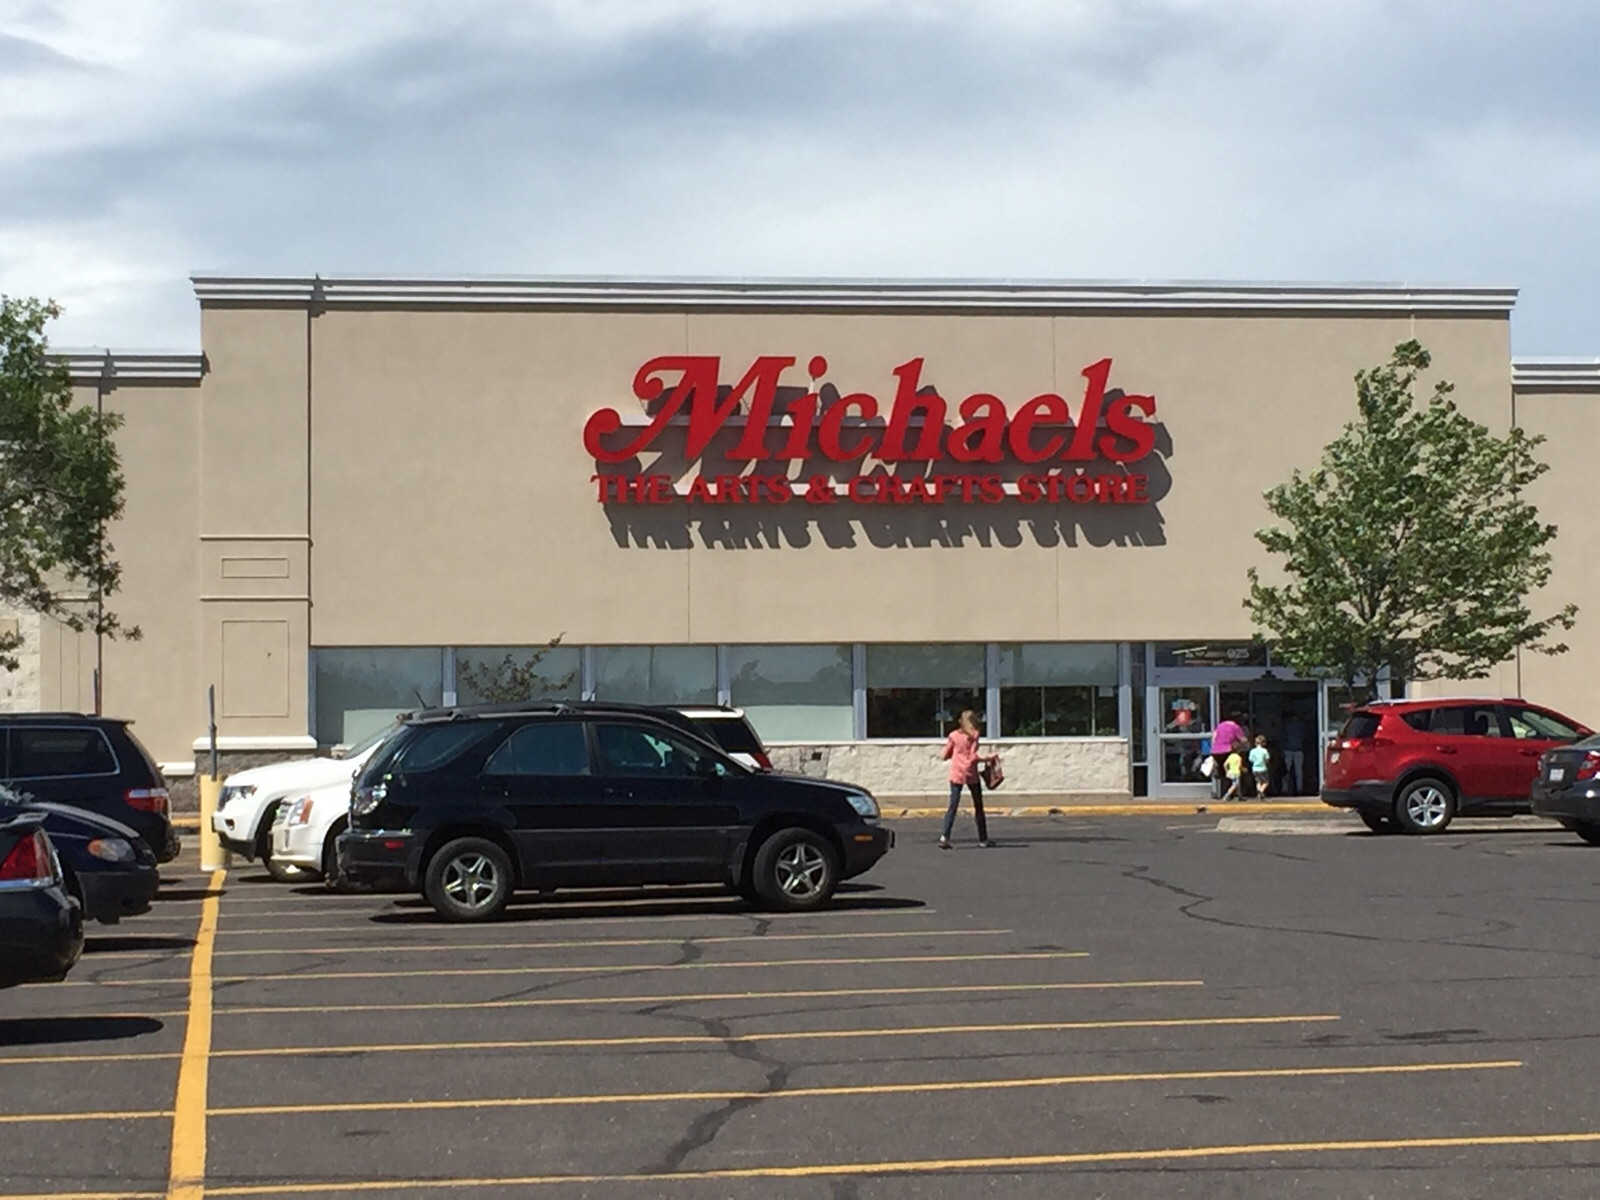 Michaels retail store in Duluth, Minnesota.